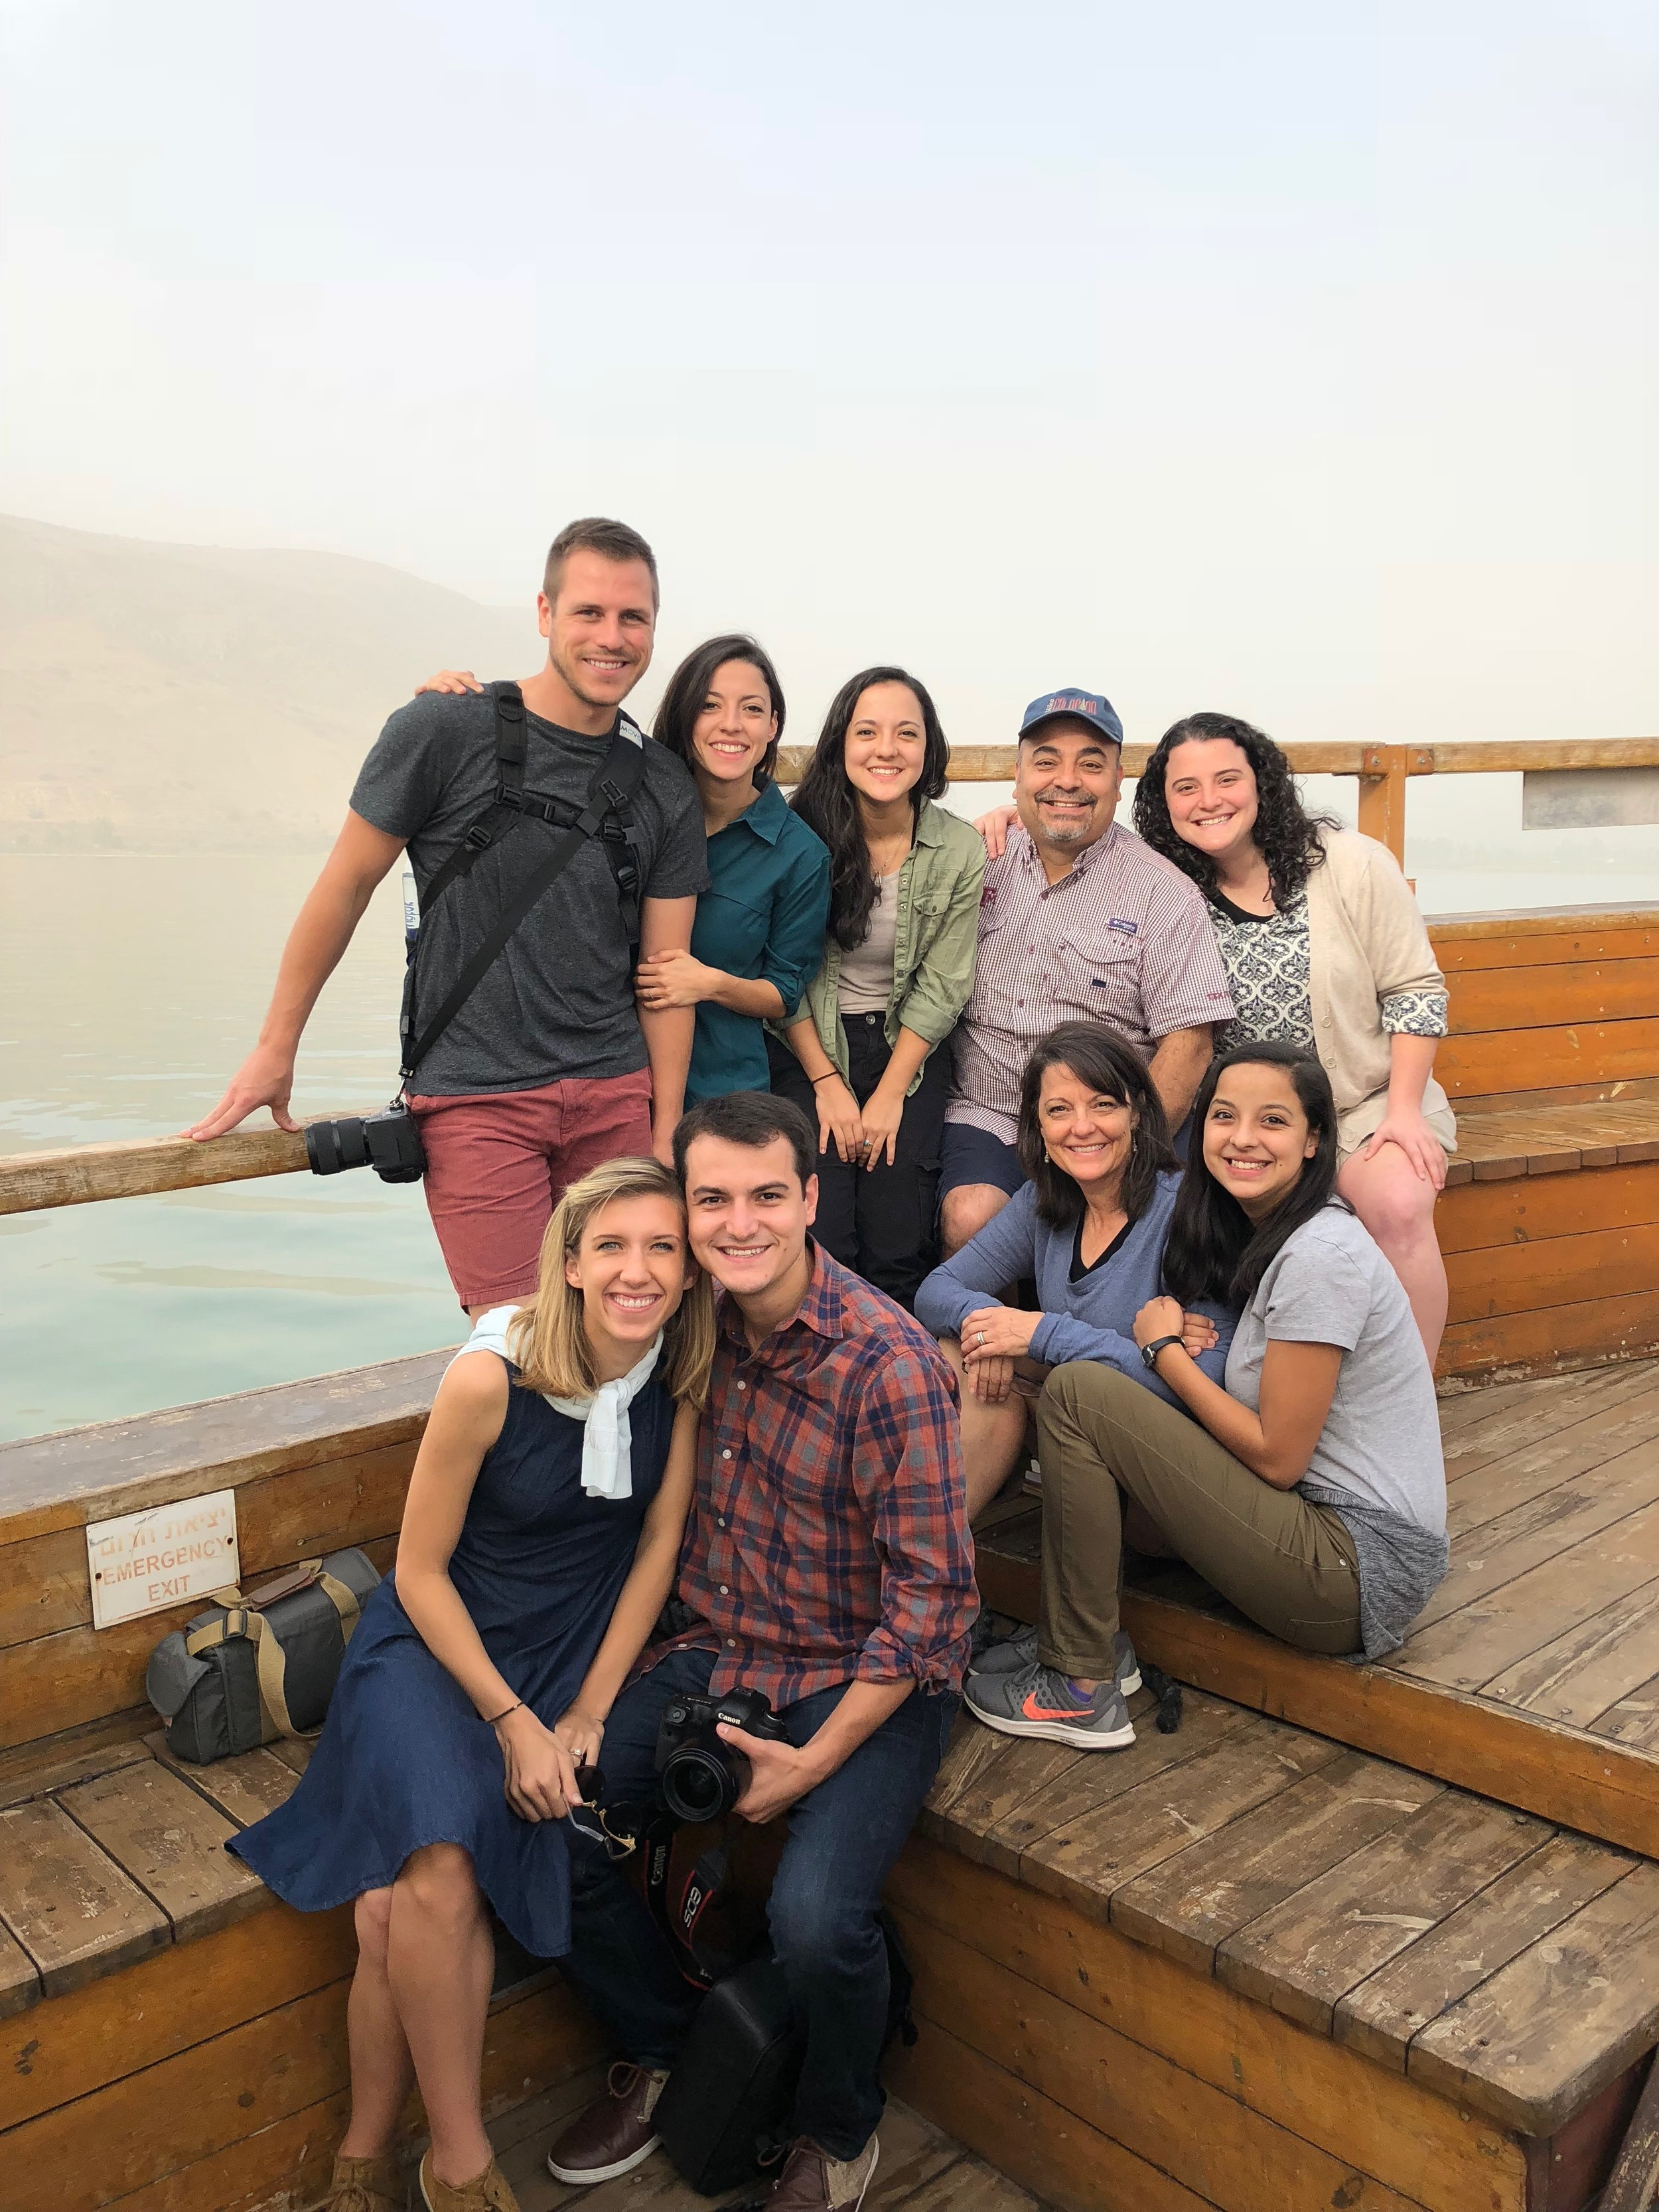 Riding a boat on the Sea of Galilee